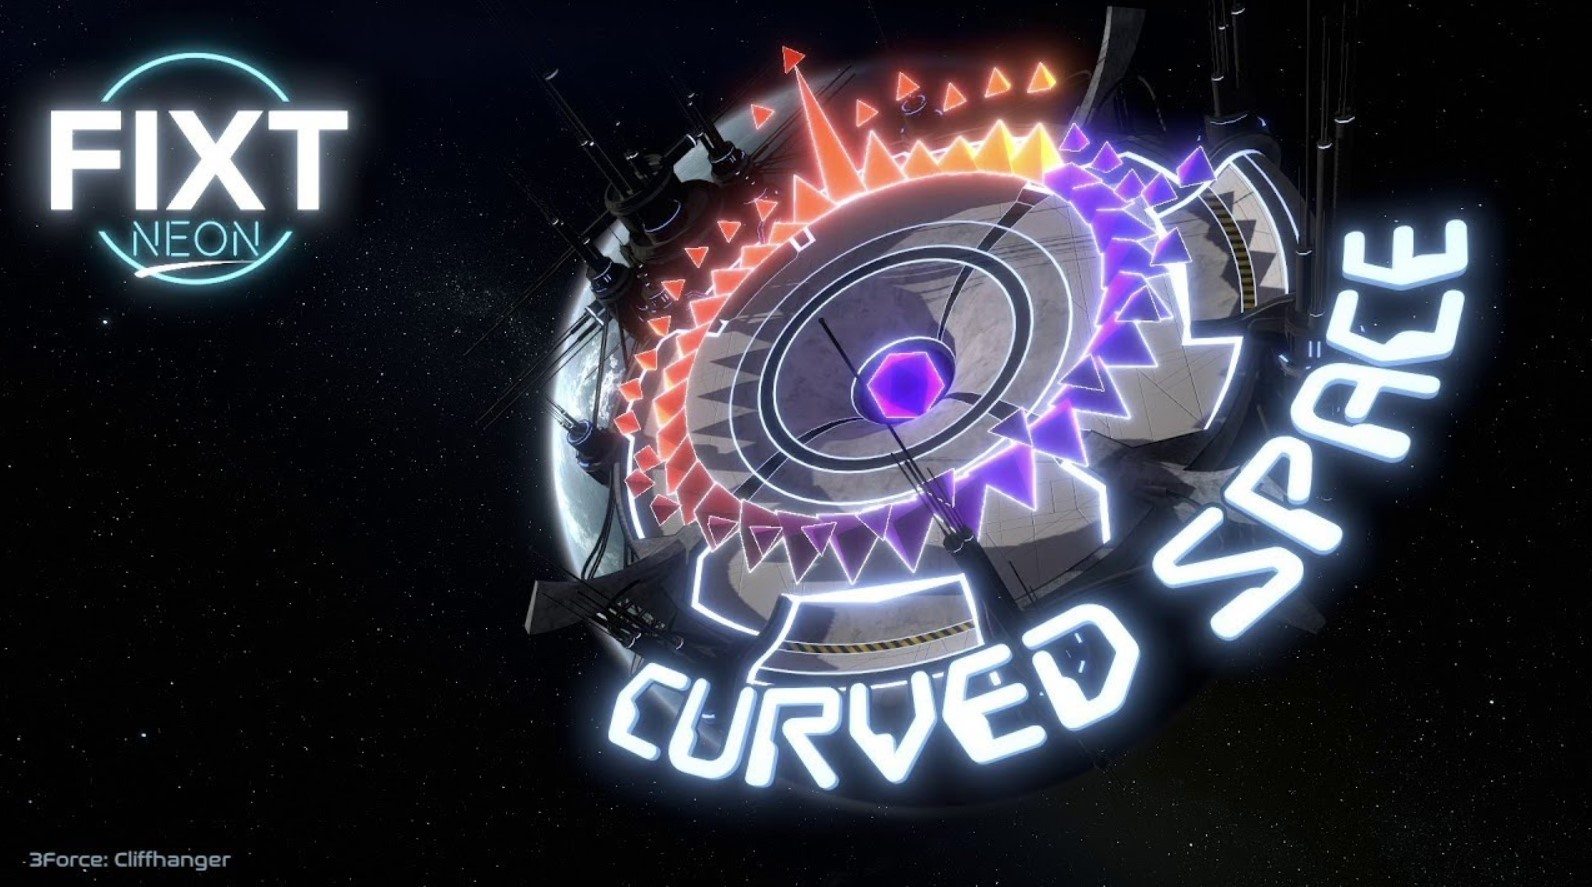 Curved Space download with crack torrent free download